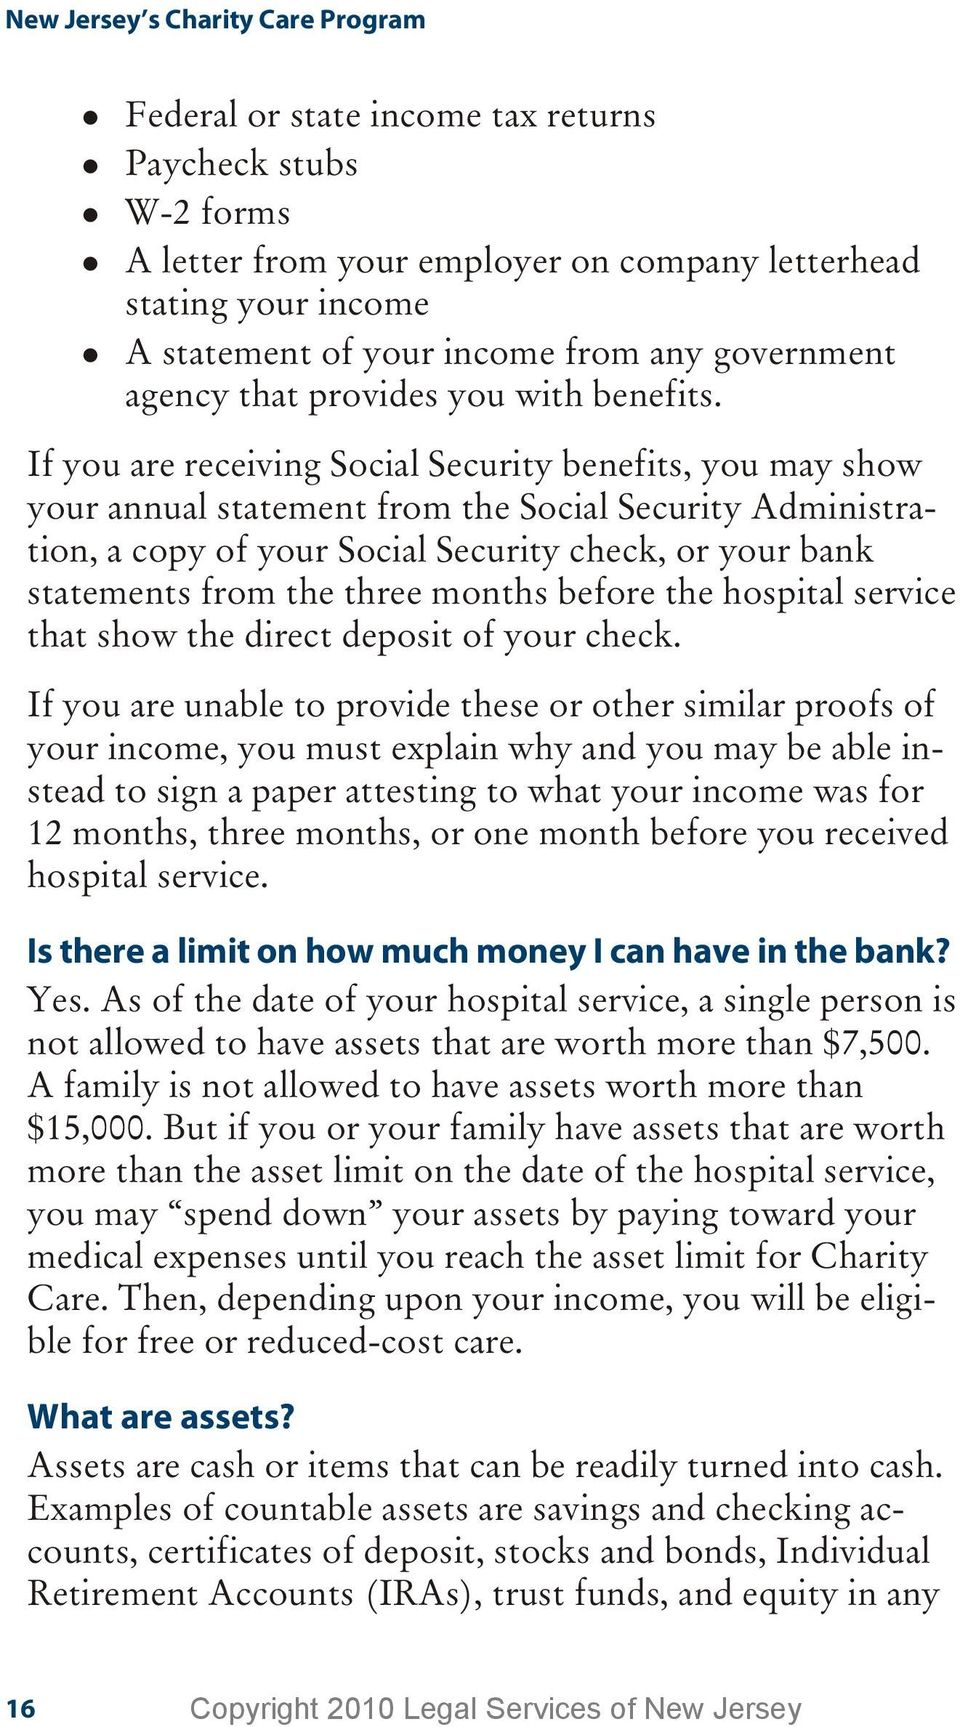 If you are re ceiv ing So cial Se cu rity ben e fits, you may show your annual statement from the Social Security Administra - tion, a copy of your So cial Se cu rity check, or your bank state ments